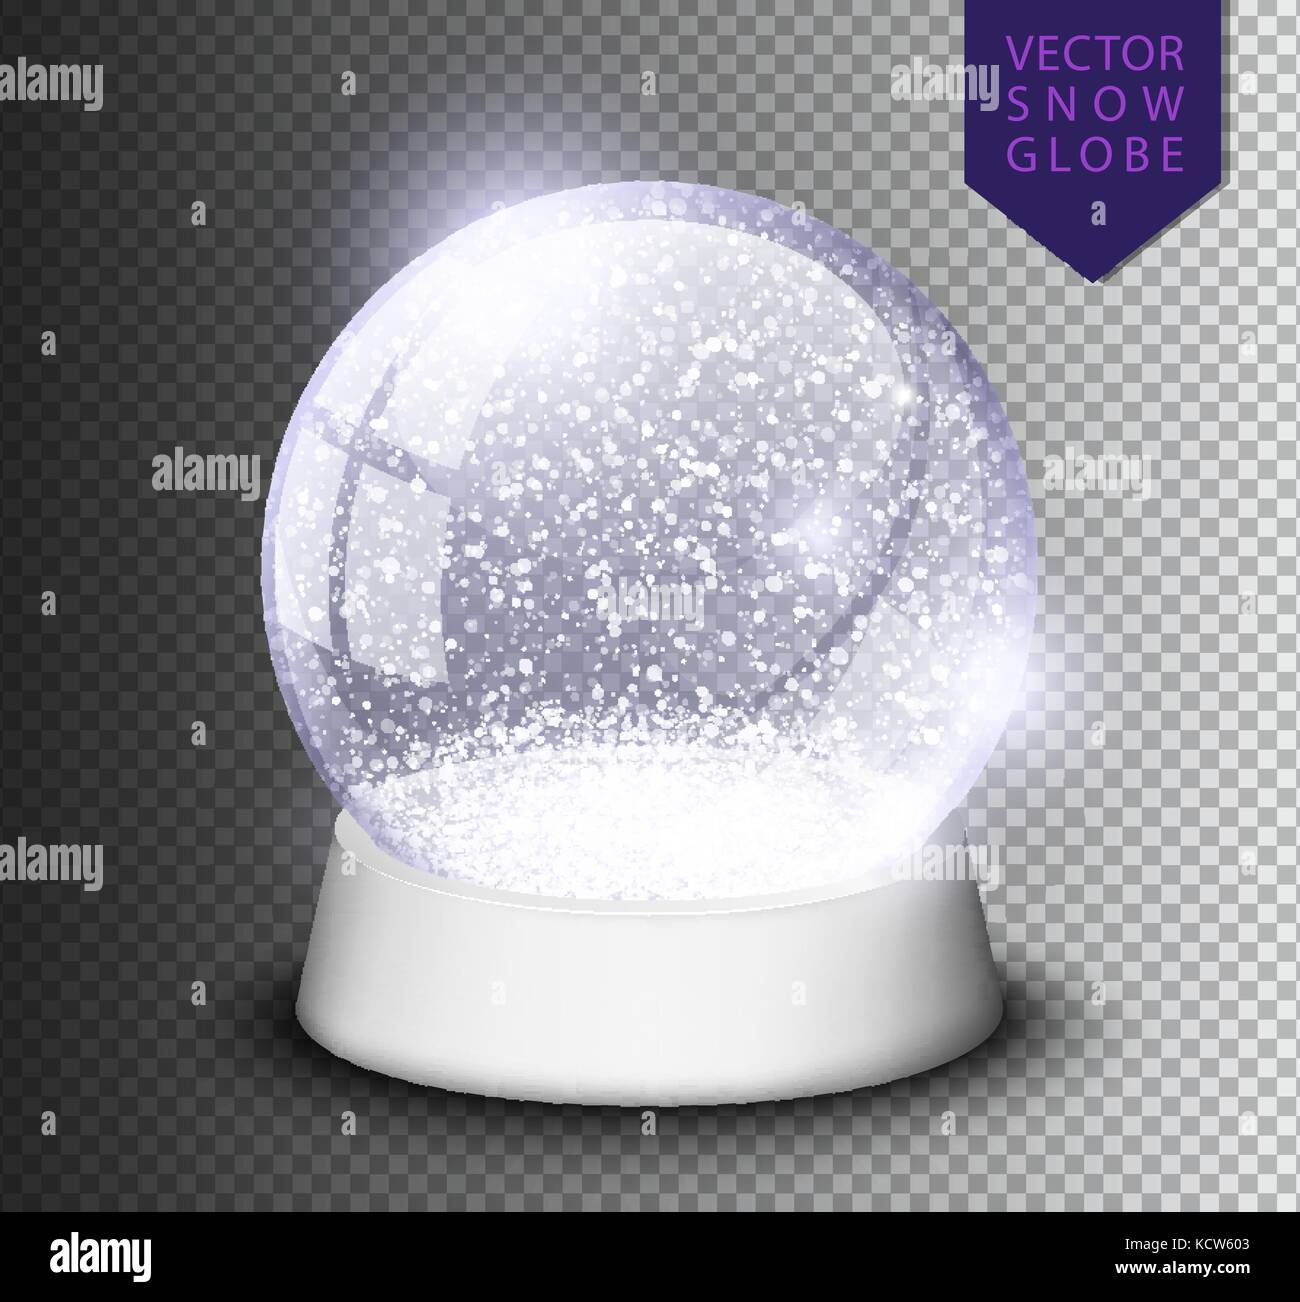 snow globe stock vector images alamy